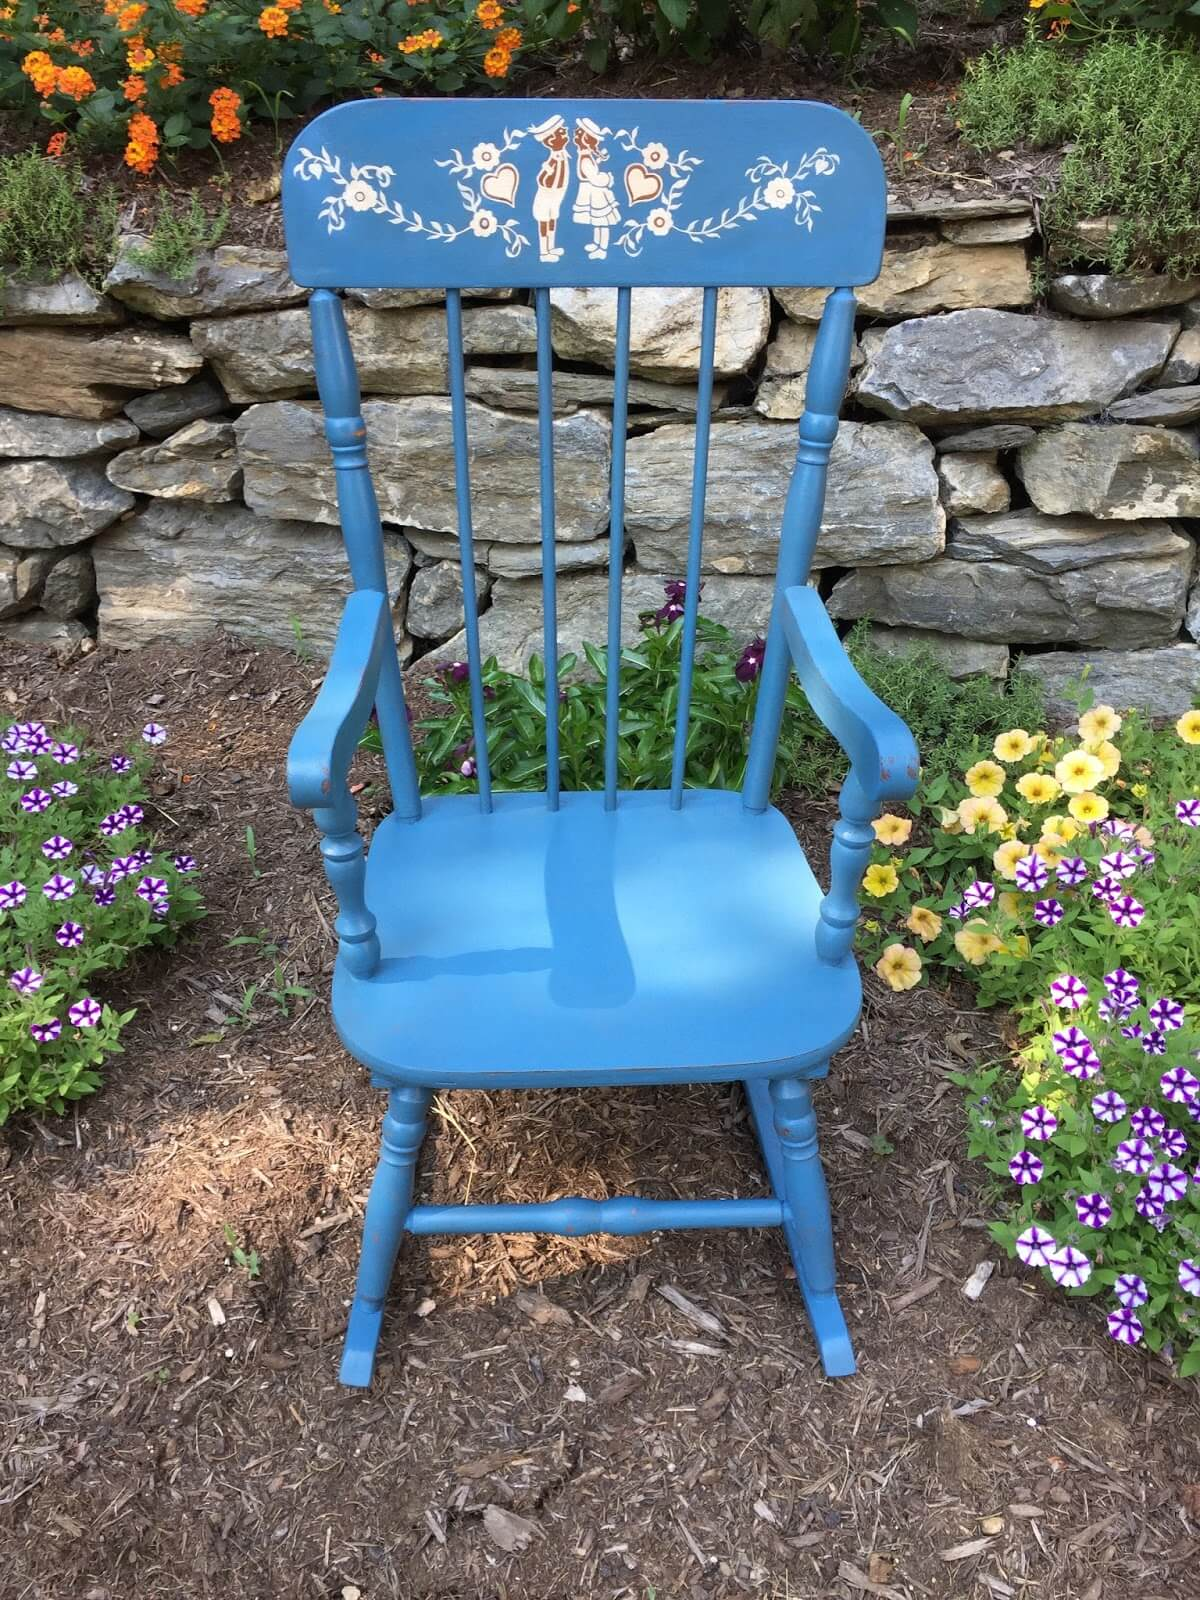 An Adorable Rocking Chair Painted Using Stencils